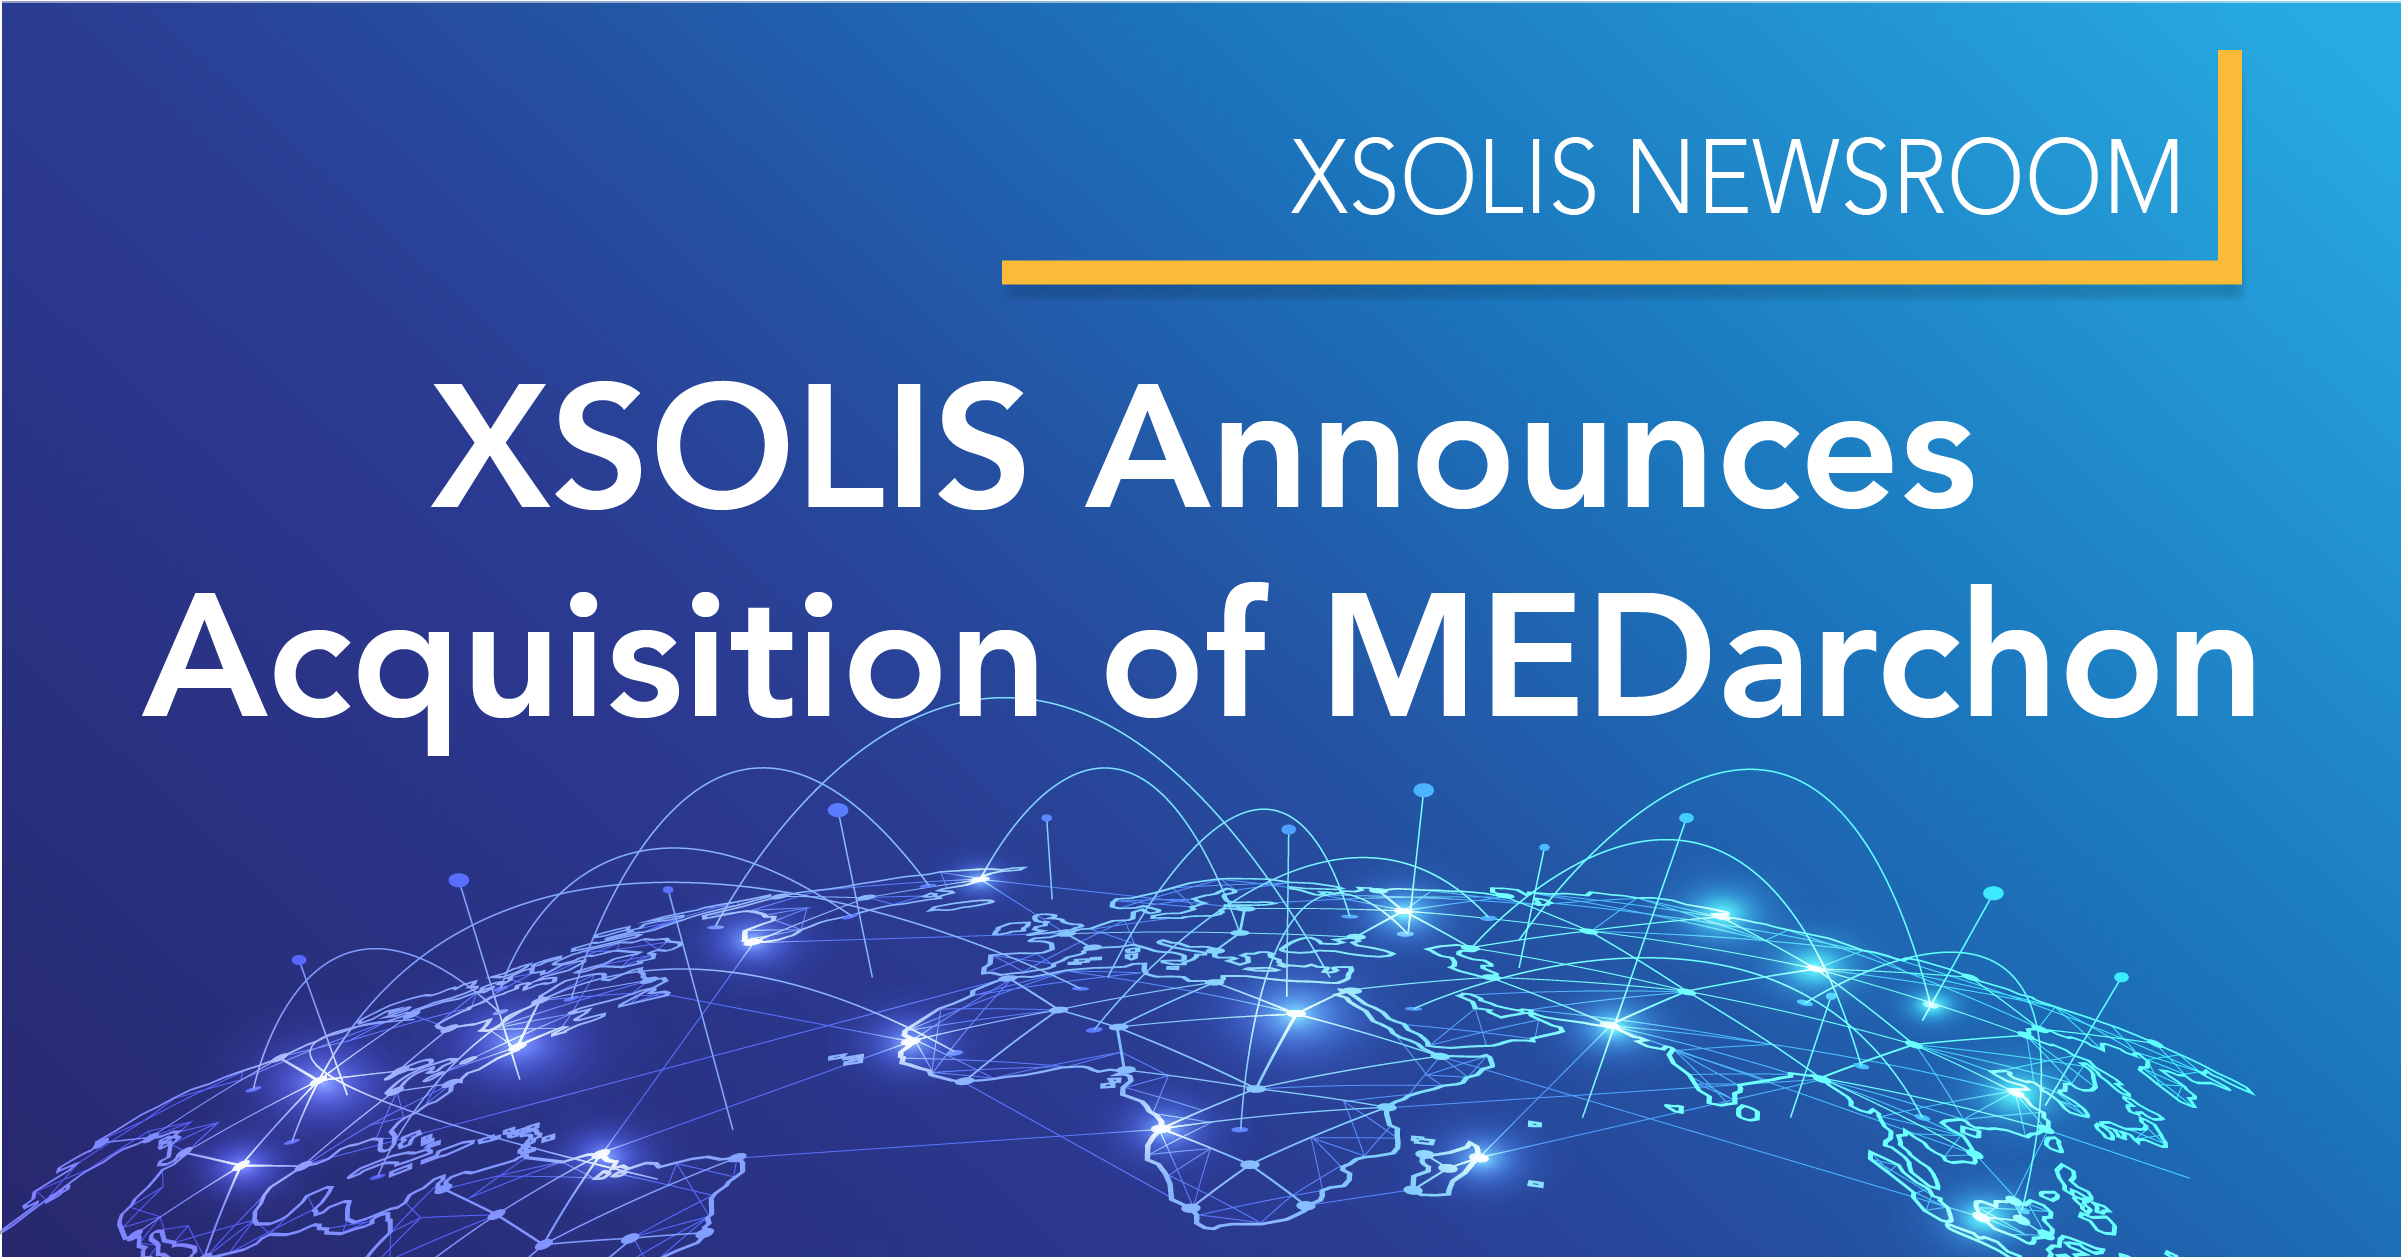 XSOLIS Announces Acquisition of MEDarchon